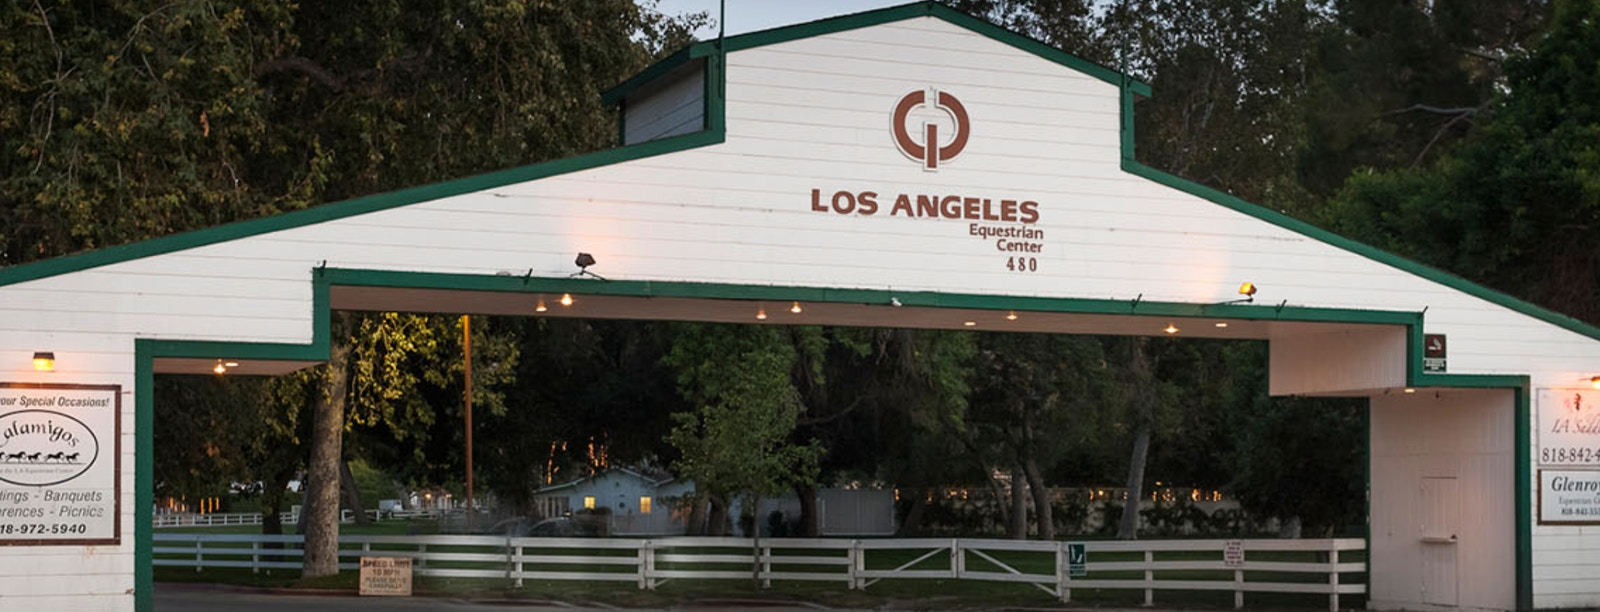 Los Angeles Equestrian Center Hosts Unique Educational Opportunities